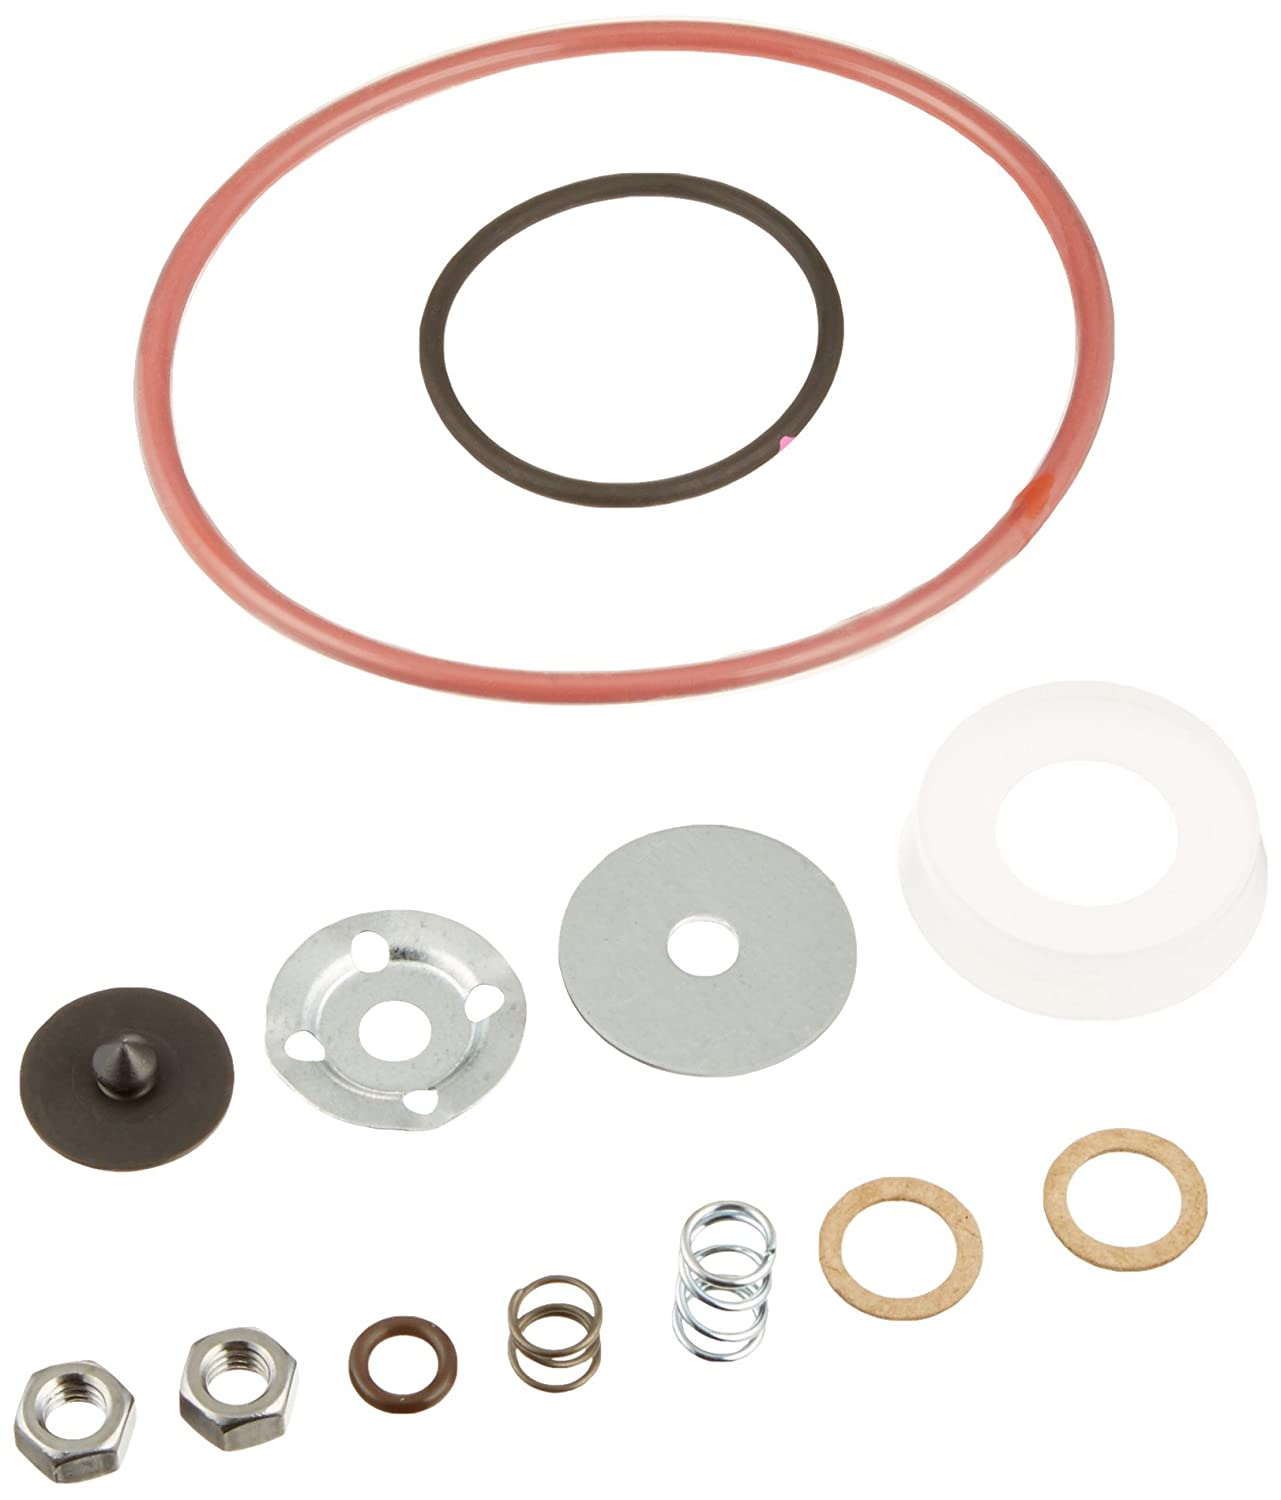 Chapin 6-4646 Xtreme Repair Kit For Chapin Xtreme Series Sprayers